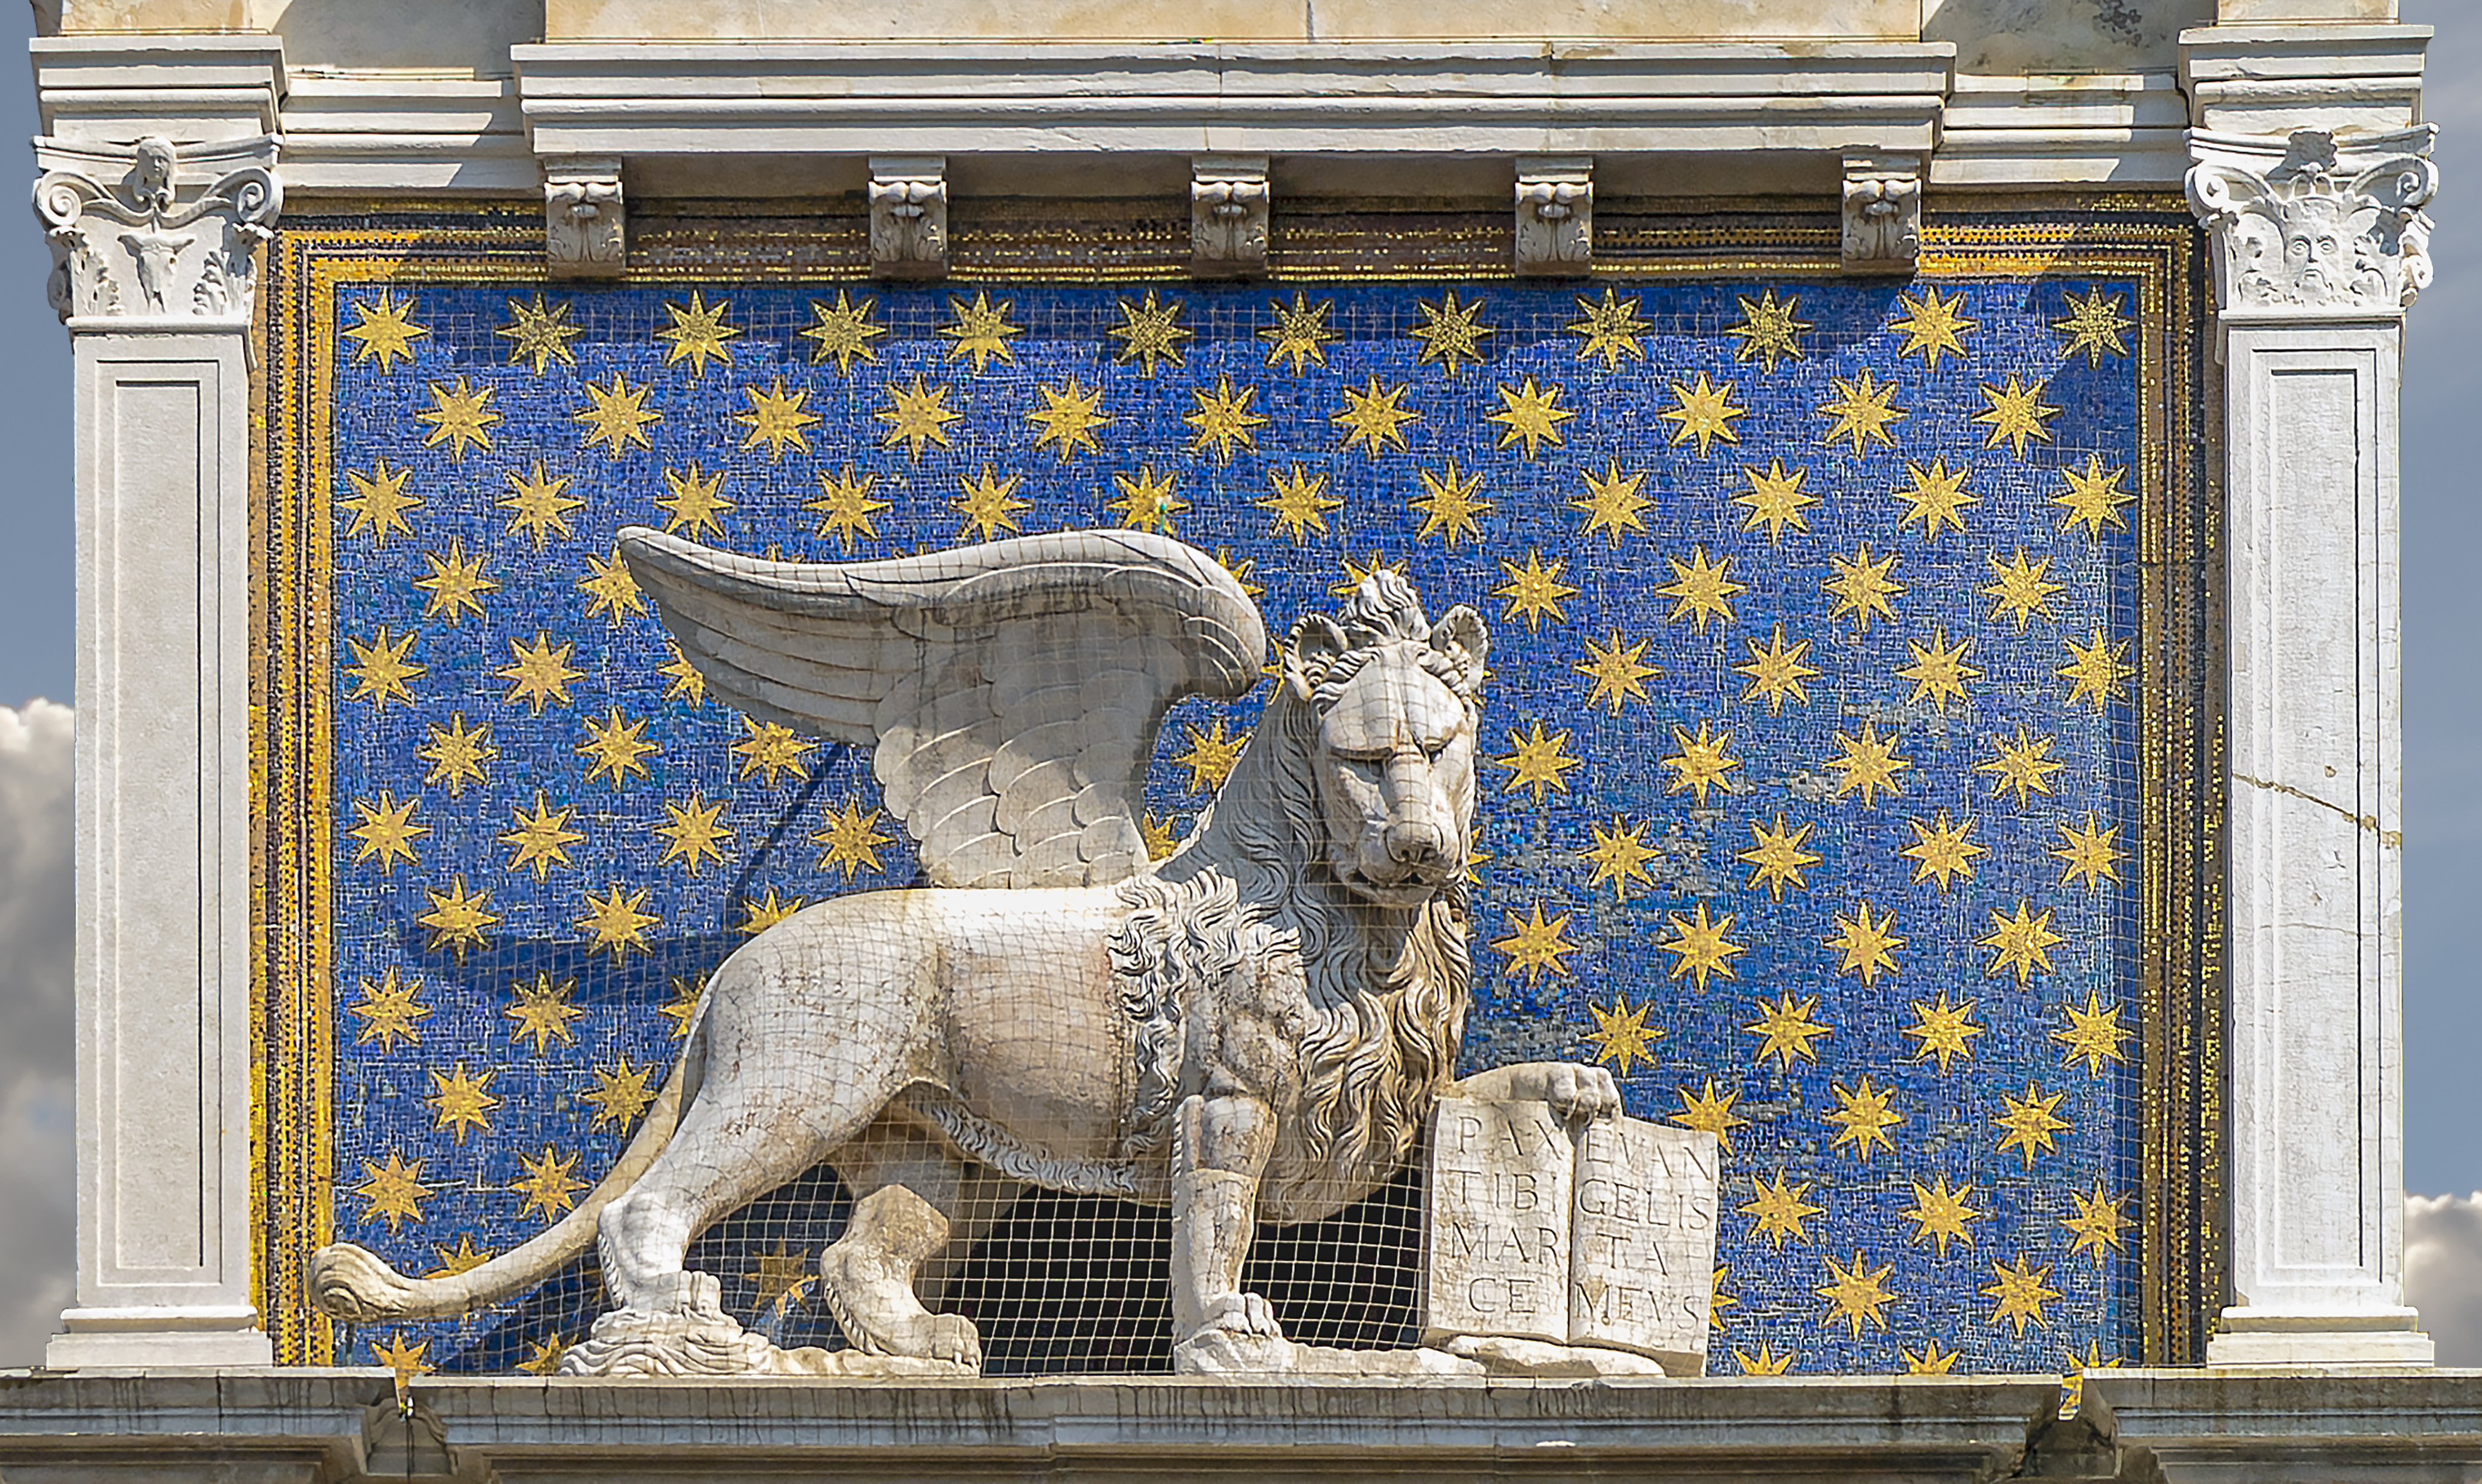 File:Piazza San Marco (Venice) - Clock tower - Lion of San Marco.jpg -  Wikimedia Commons